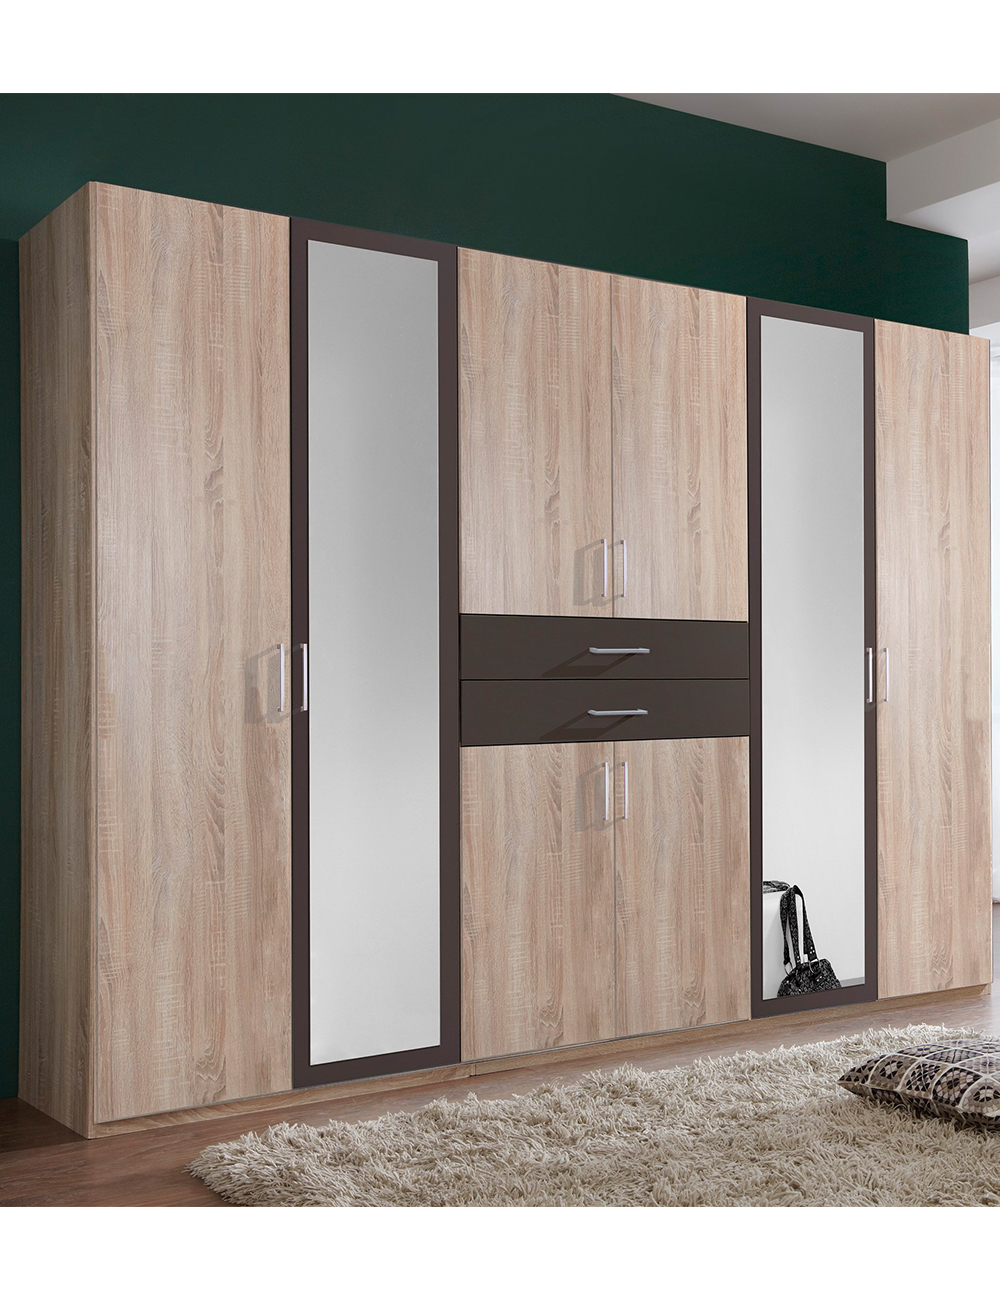 kleiderschrank lea dekor sonoma eiche s gerau und lava. Black Bedroom Furniture Sets. Home Design Ideas